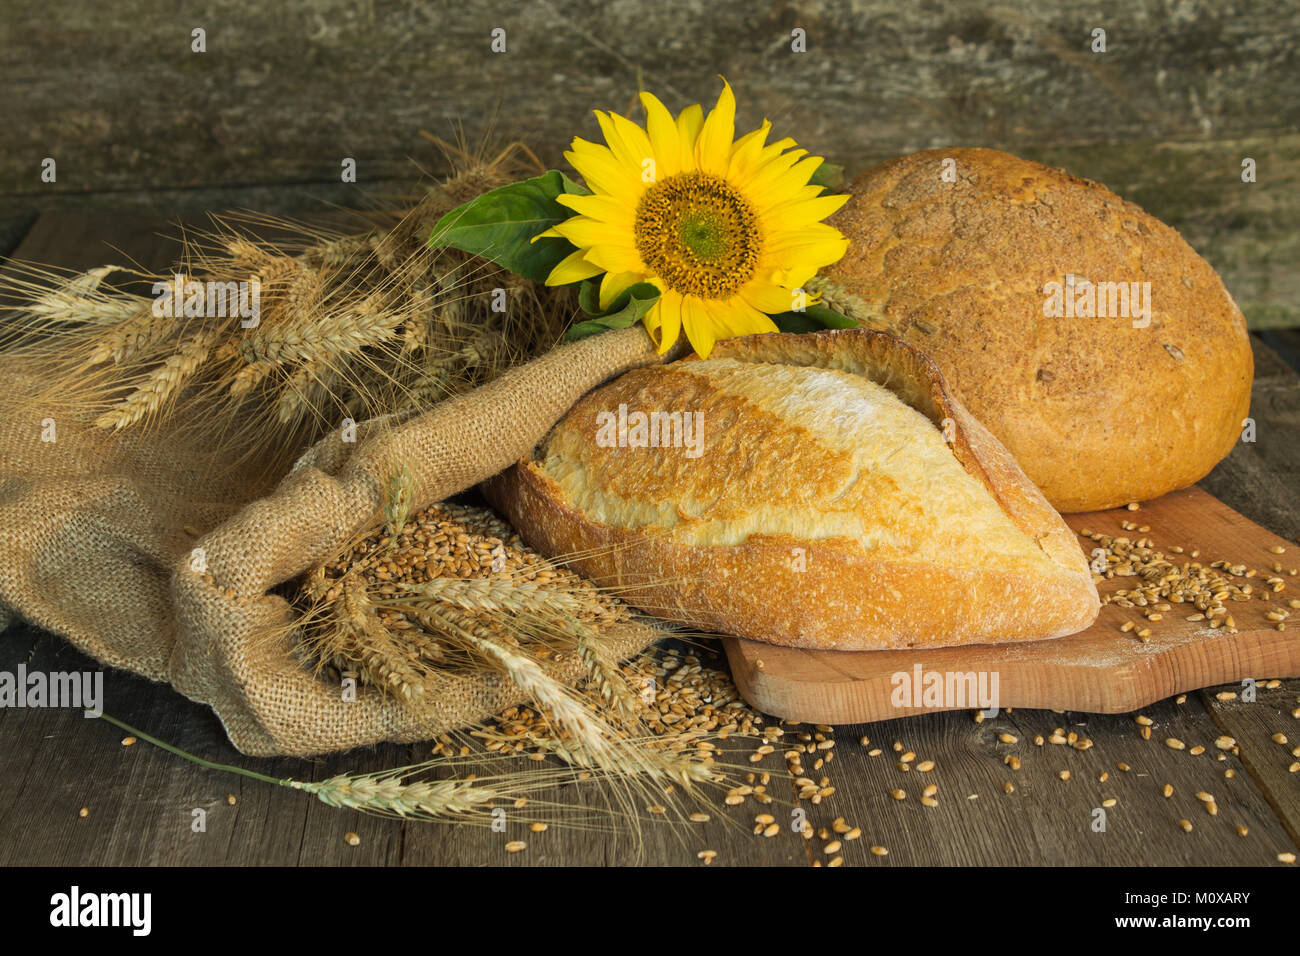 bread, wheat, ears of corn and flower sunflower on a wooden background on coarse fabric - Stock Image